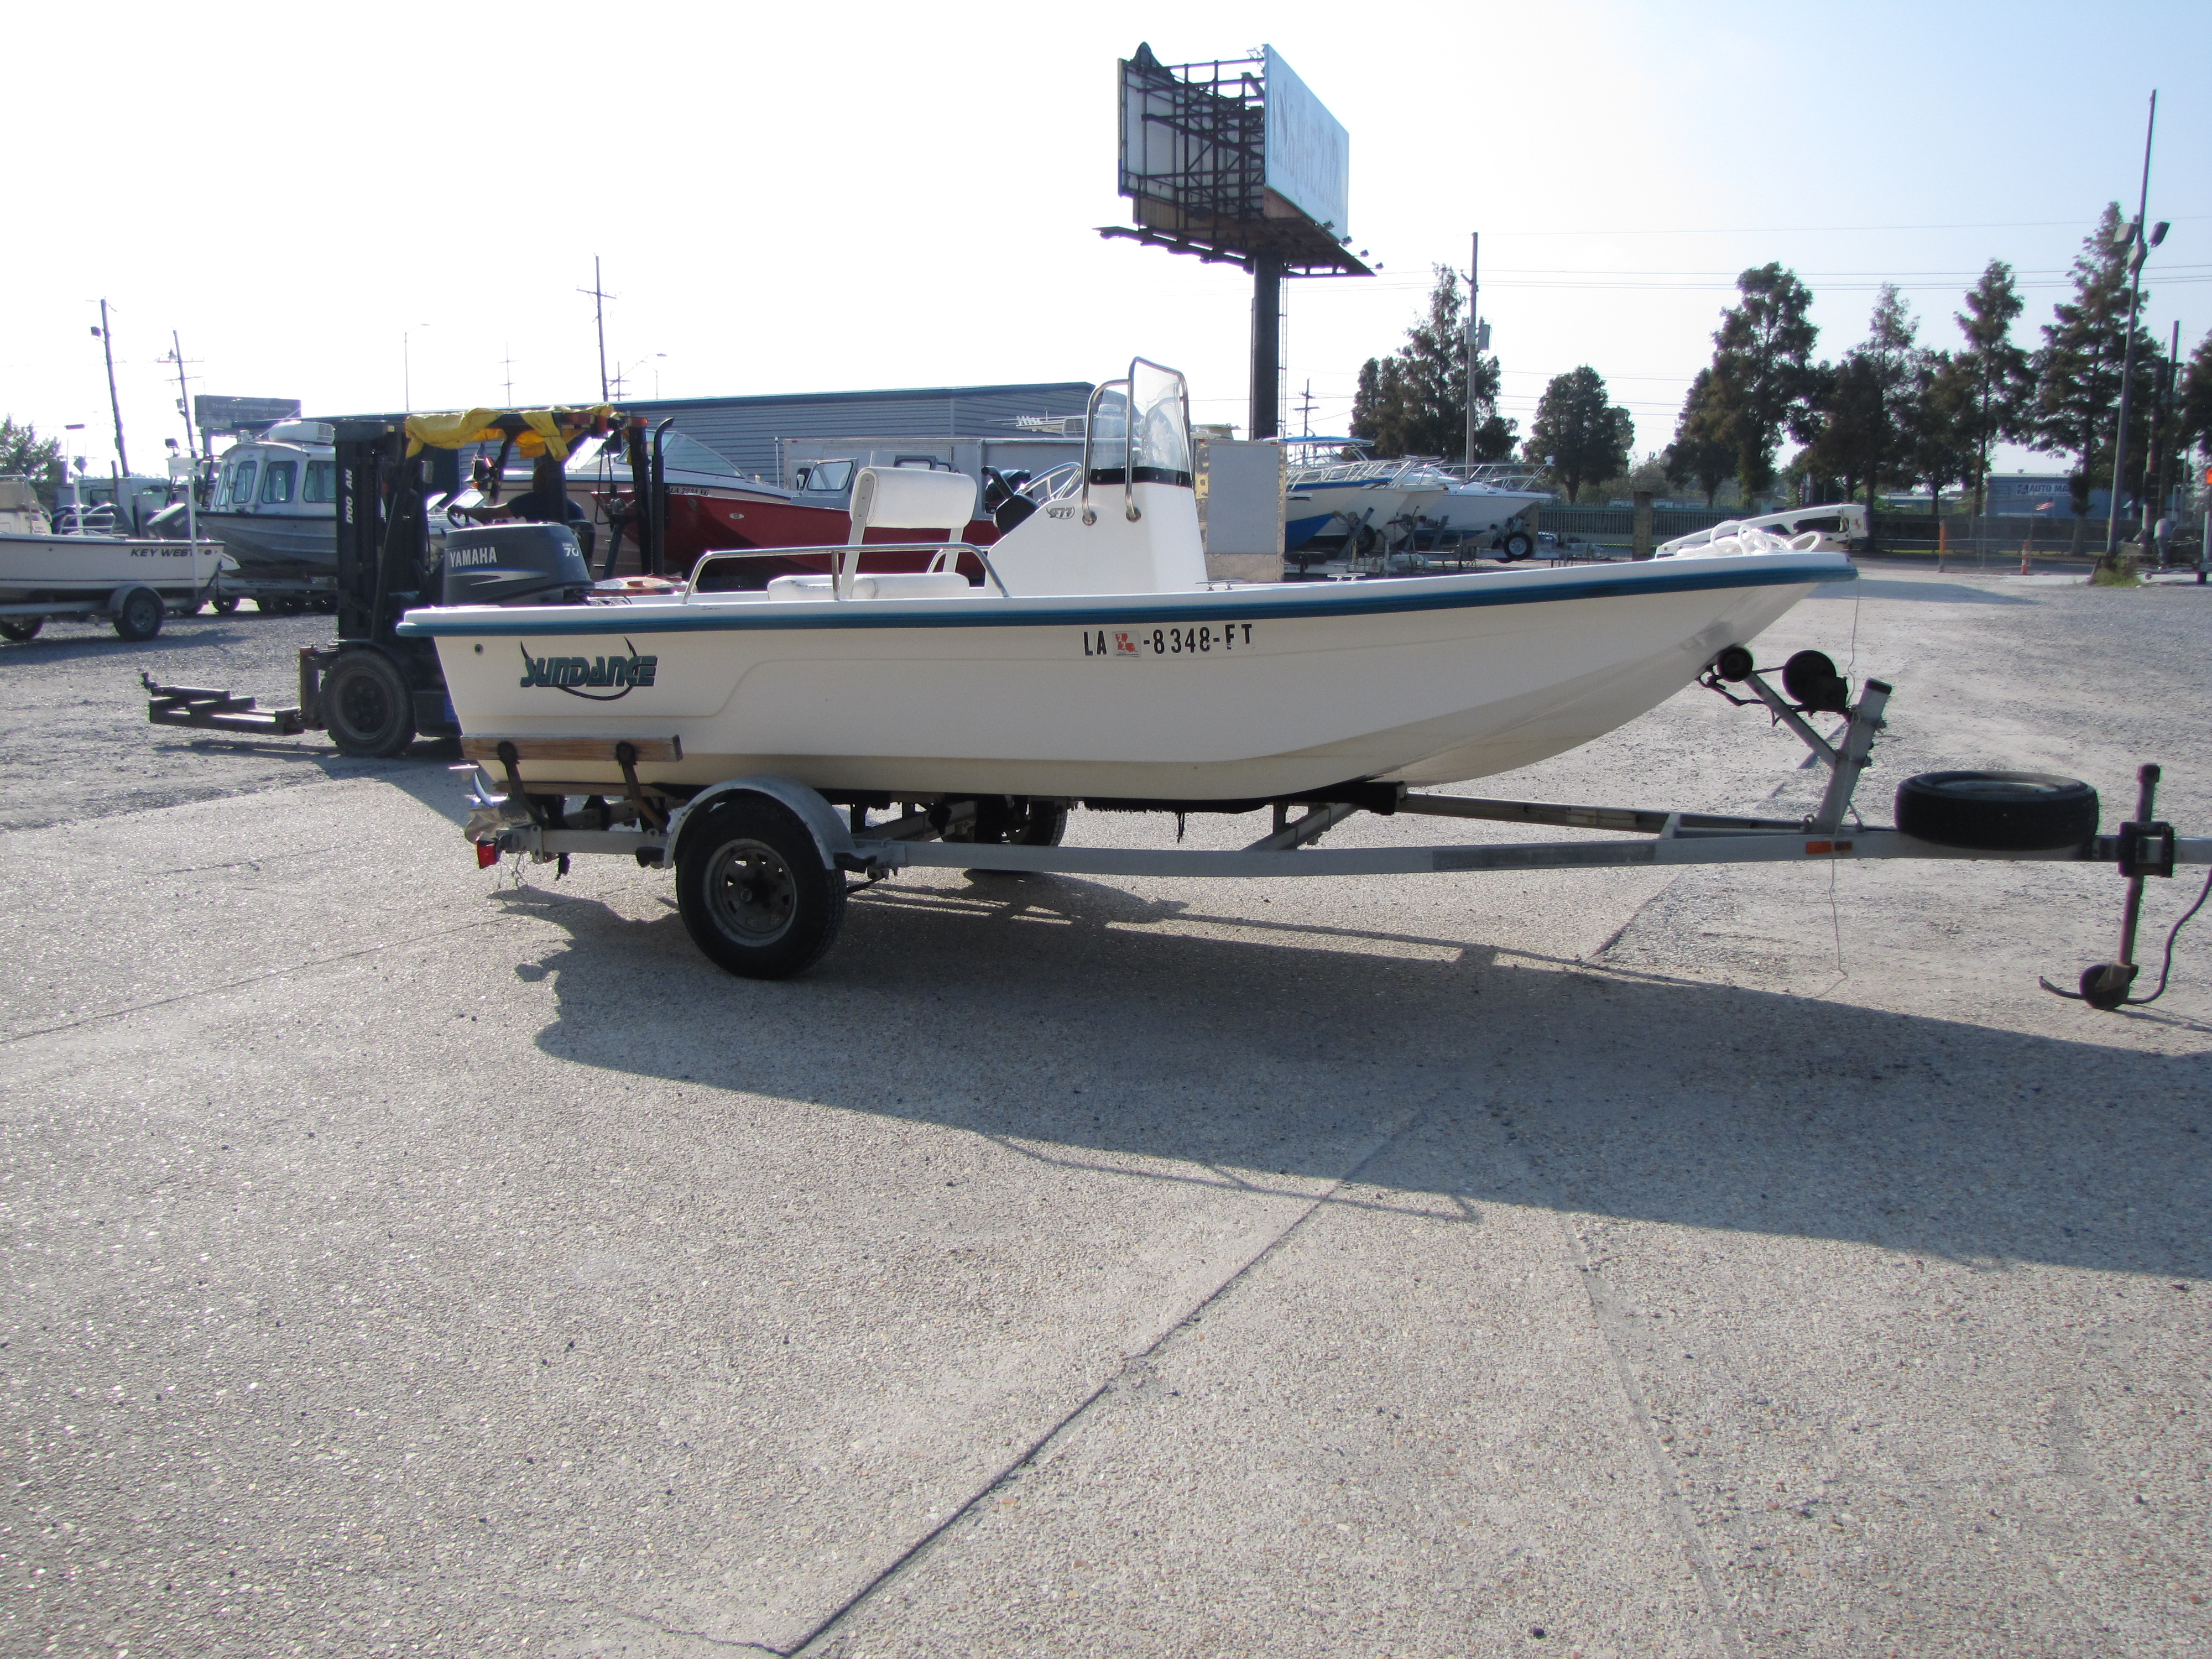 2009 Sundance boat for sale, model of the boat is 17 cc & Image # 2 of 15